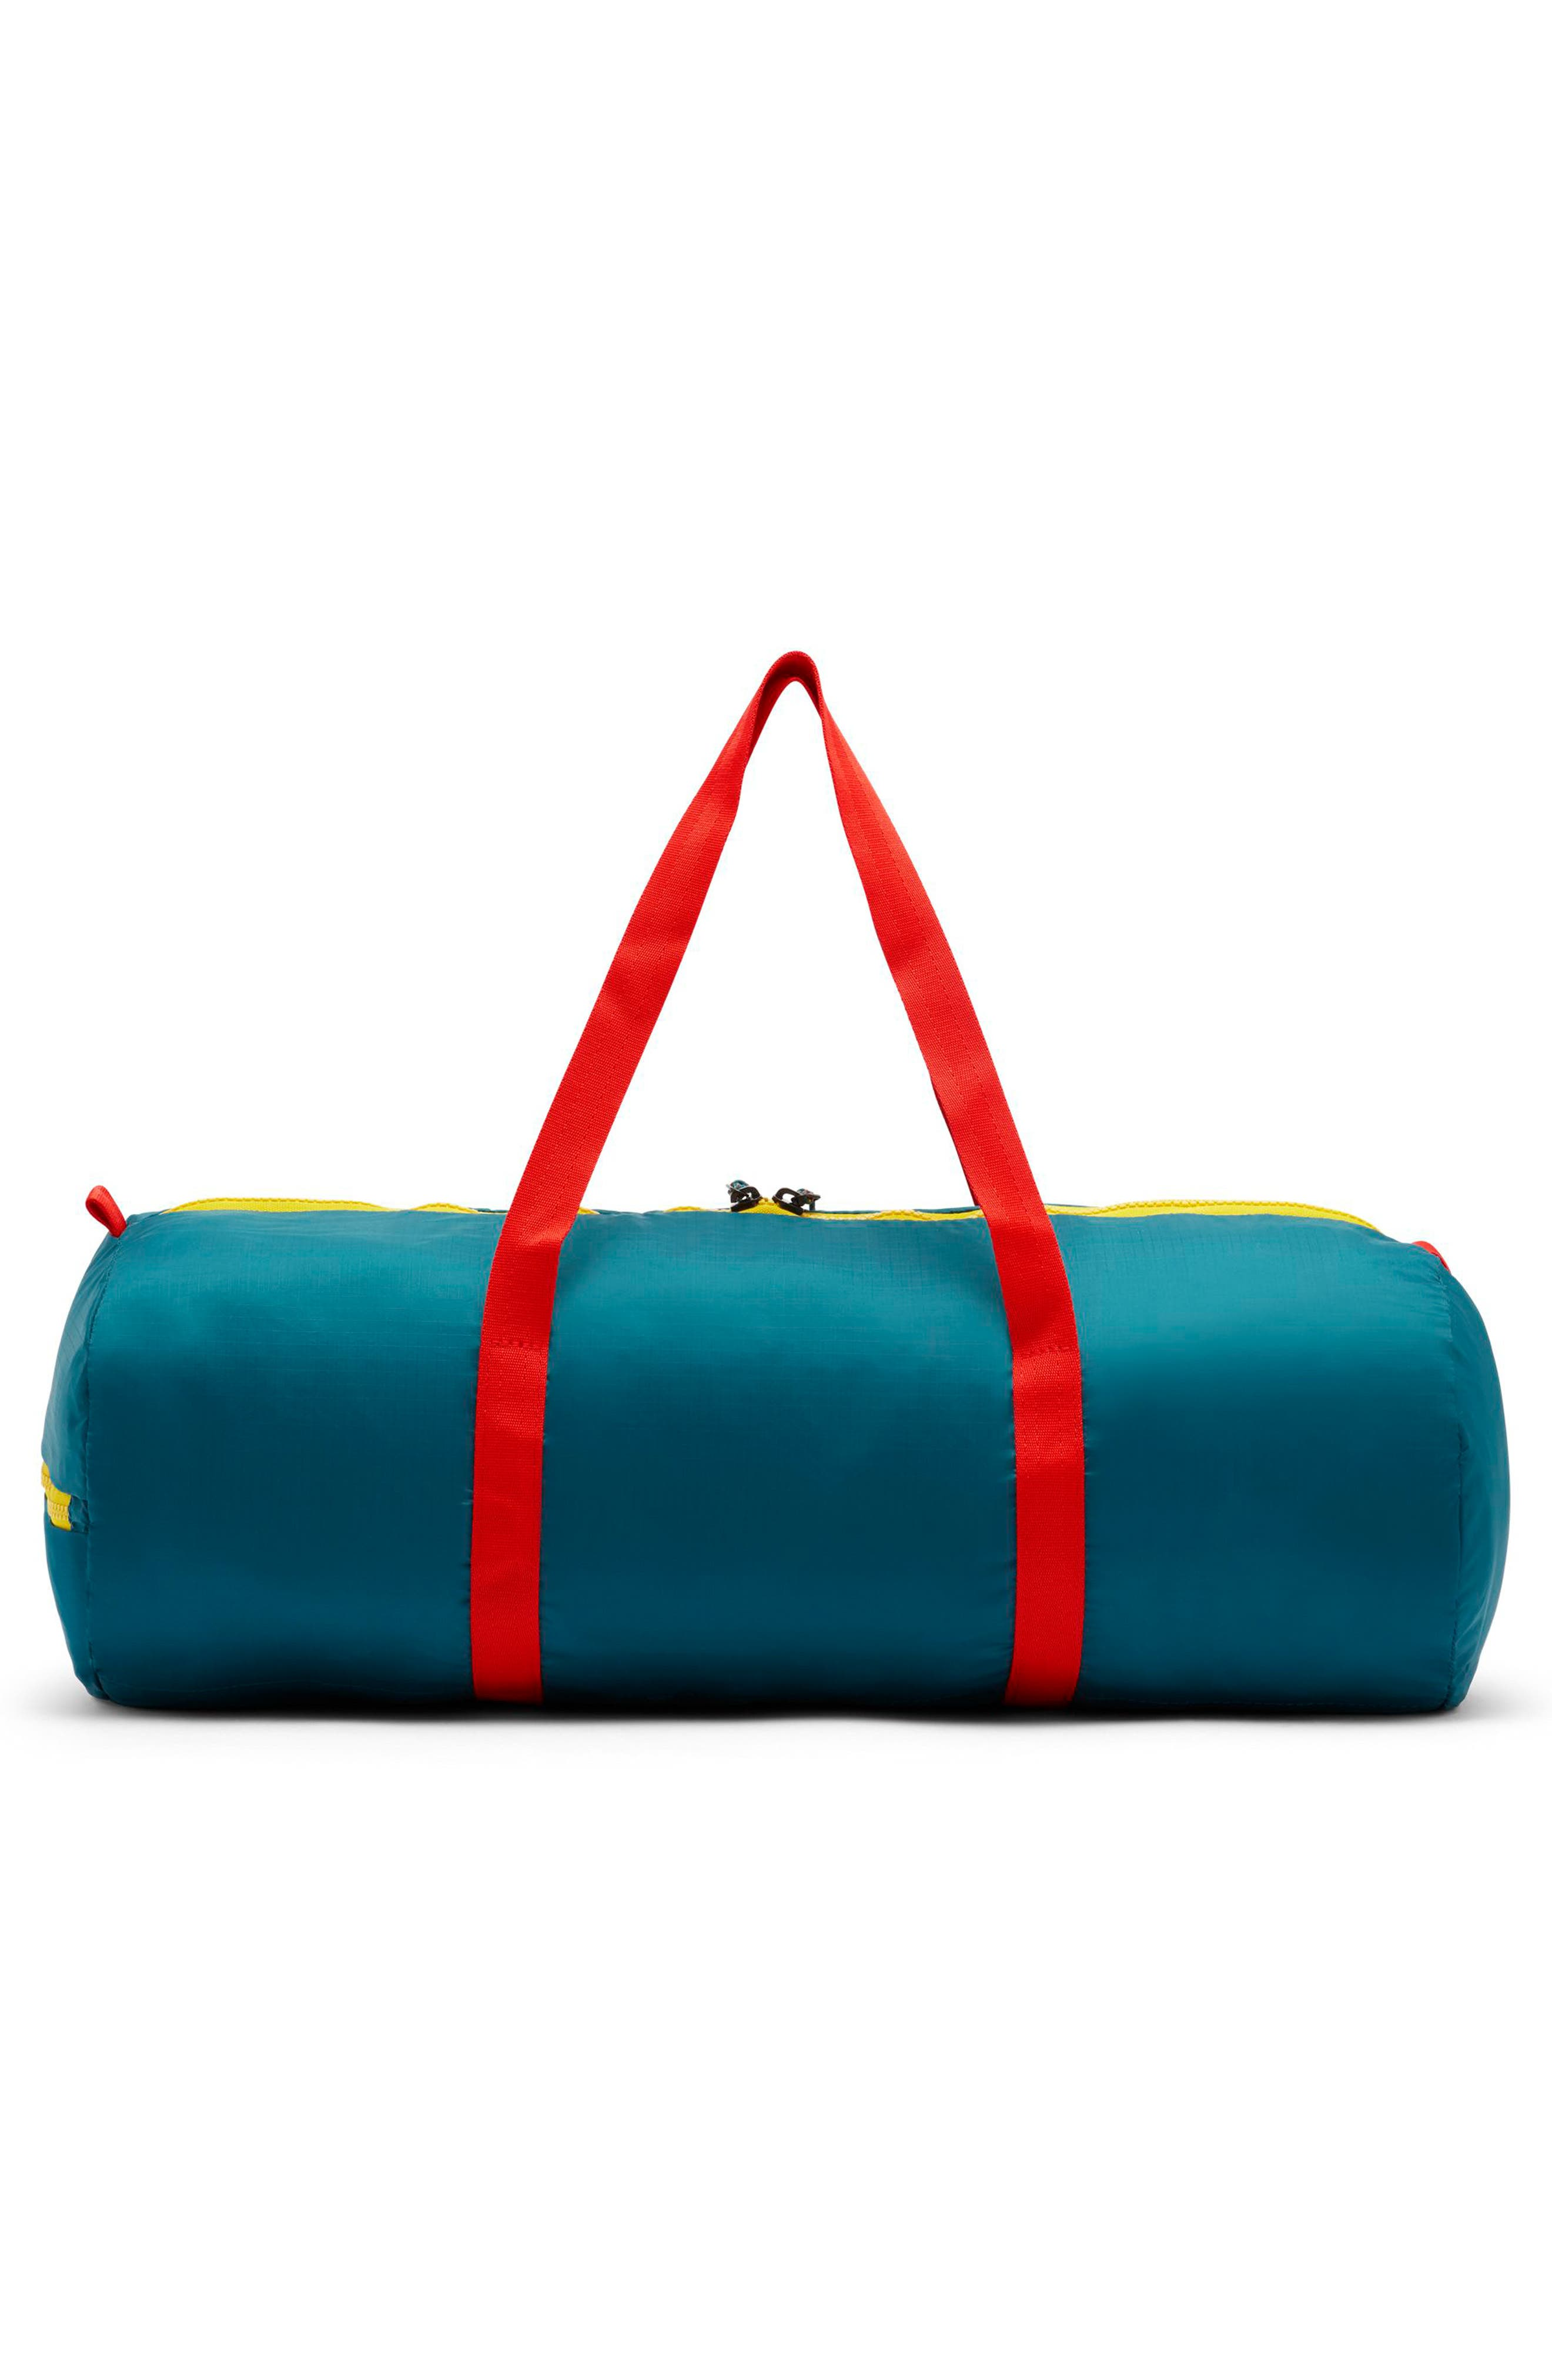 Packable Duffel Bag,                             Alternate thumbnail 2, color,                             GEODE TEAL/ HABANERO RED